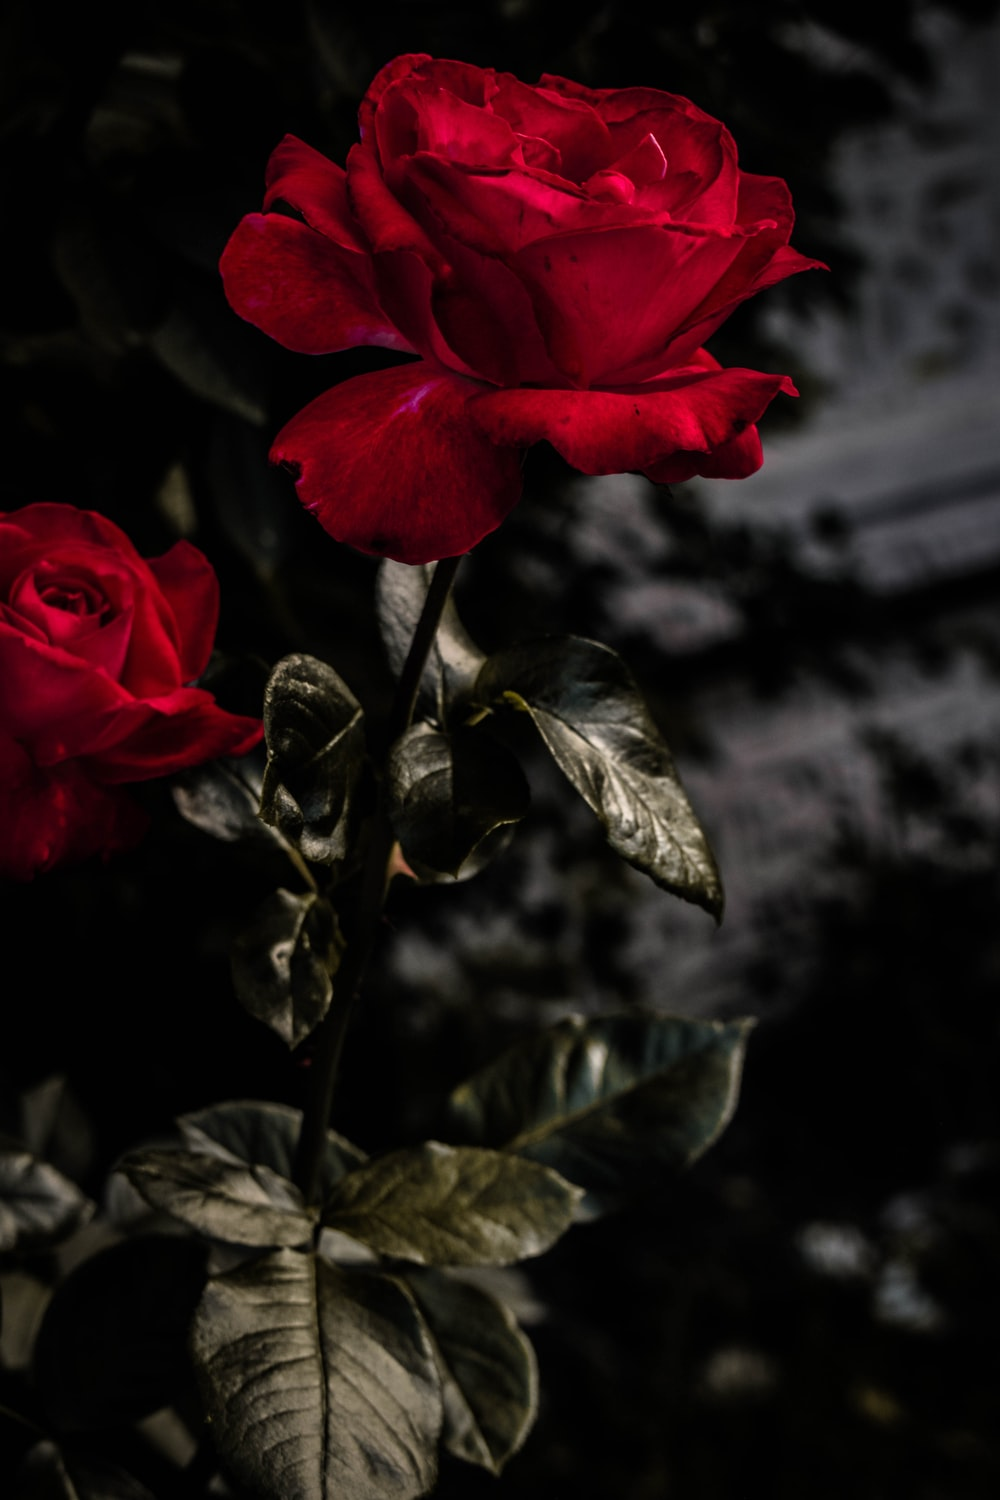 red rose close-up photography